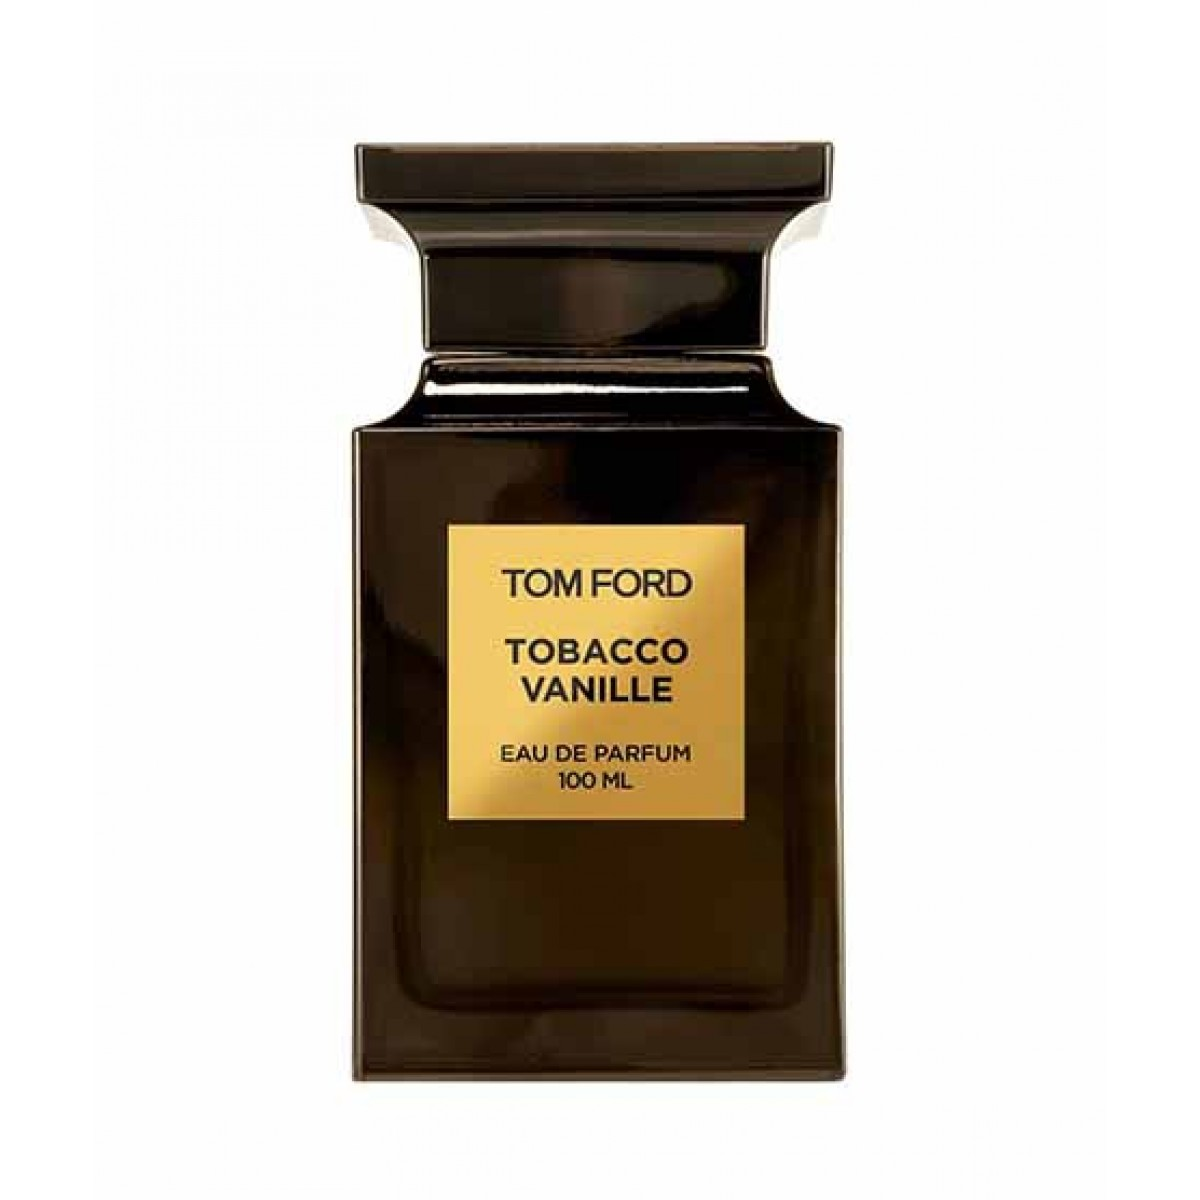 c92e293db6 Tom Ford Tobacco Vanille For Unisex Price in Pakistan | Buy Tom Ford Eau de  Parfum For Unisex 100ml | iShopping.pk